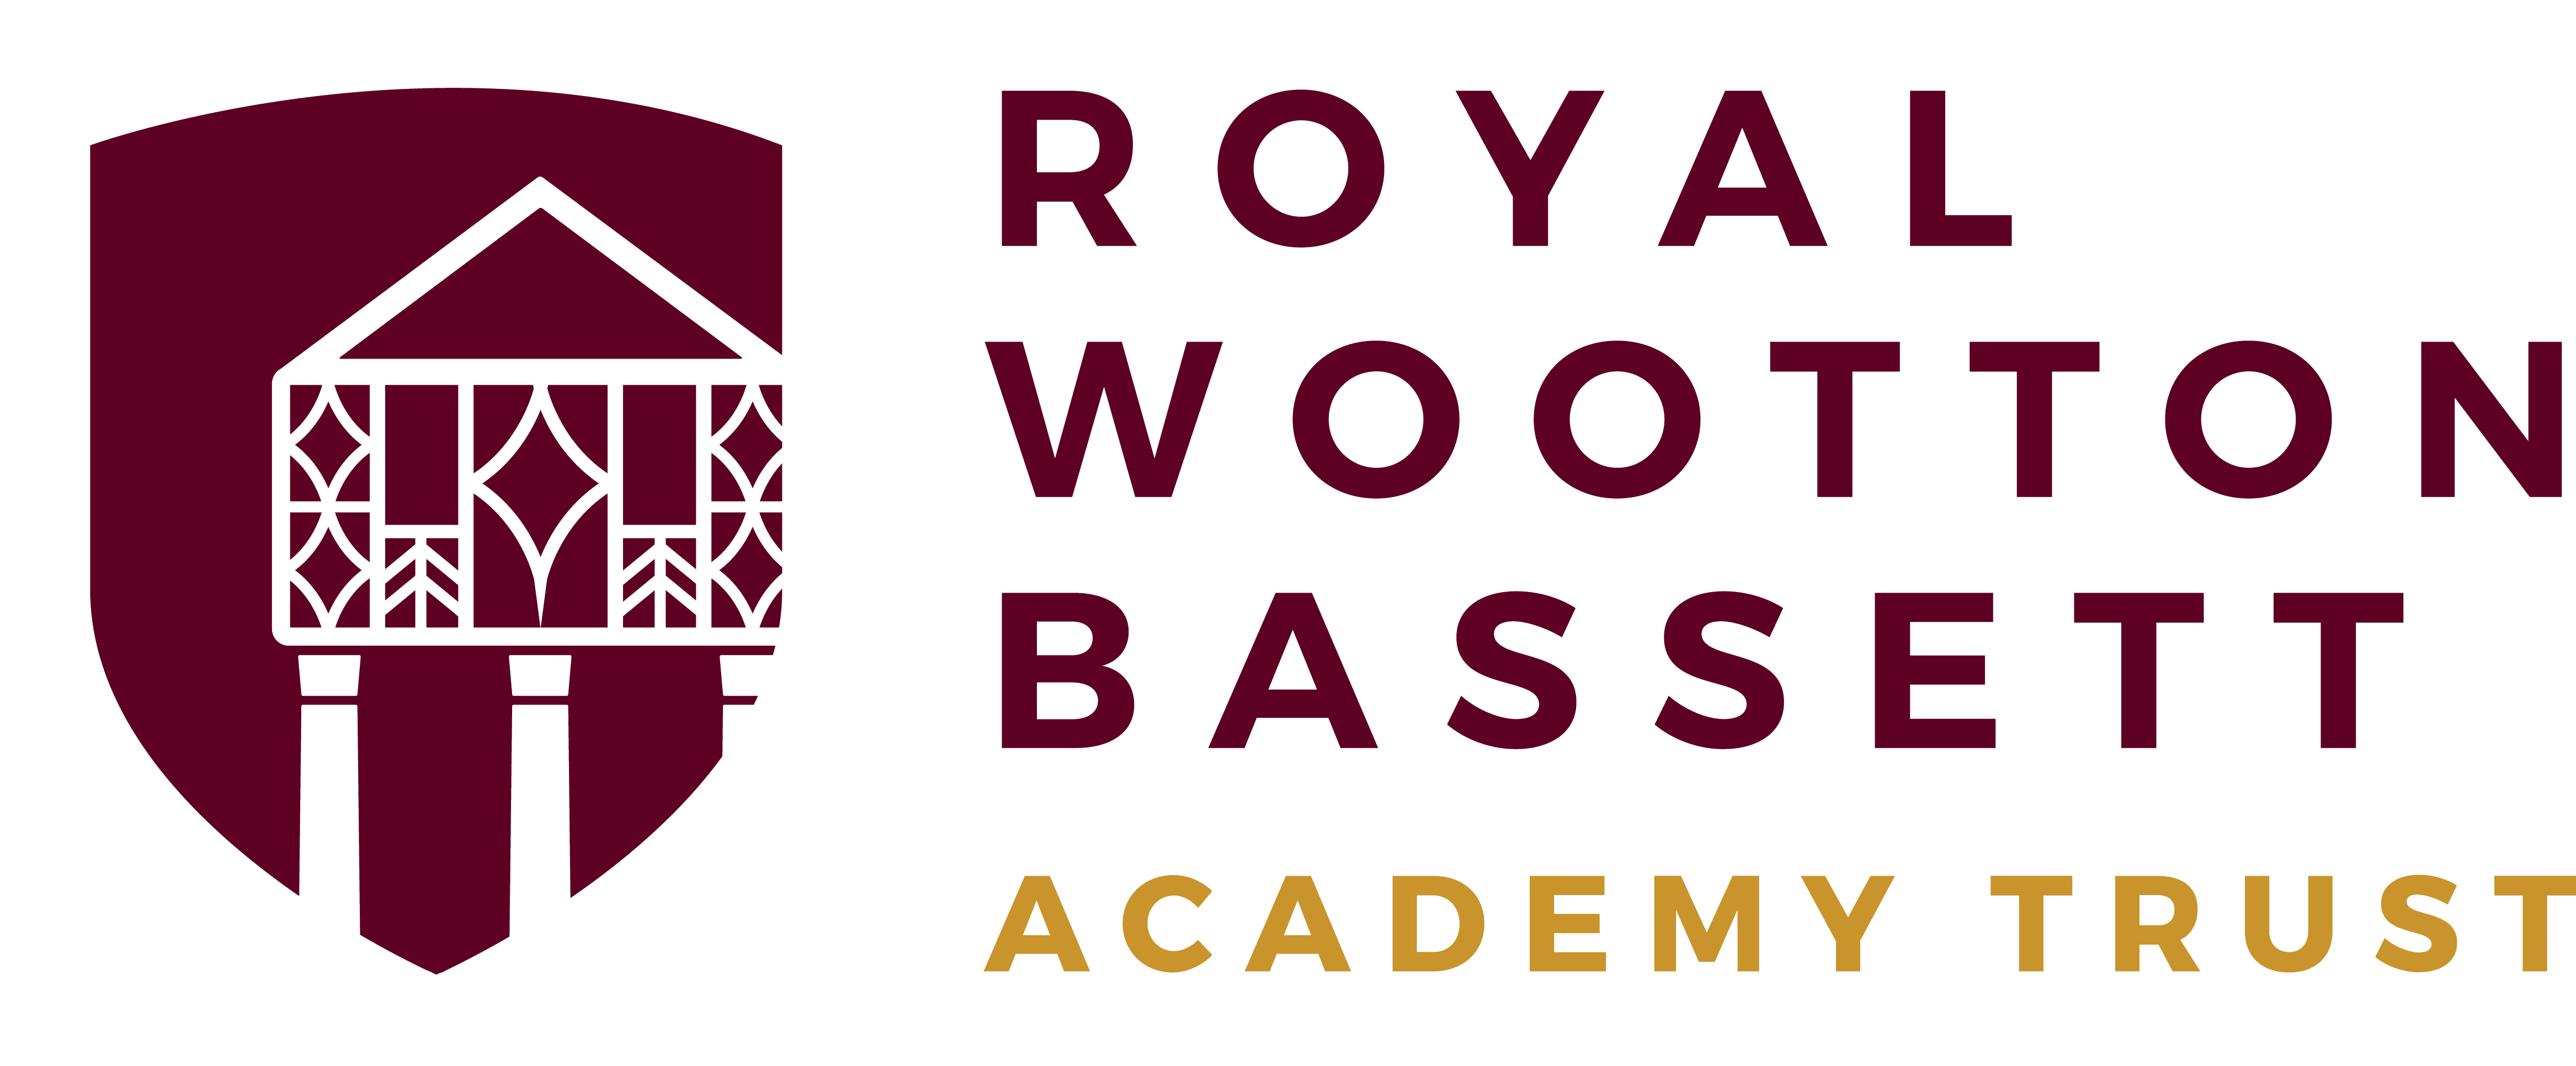 Royal Wootton Bassett Academy Trust